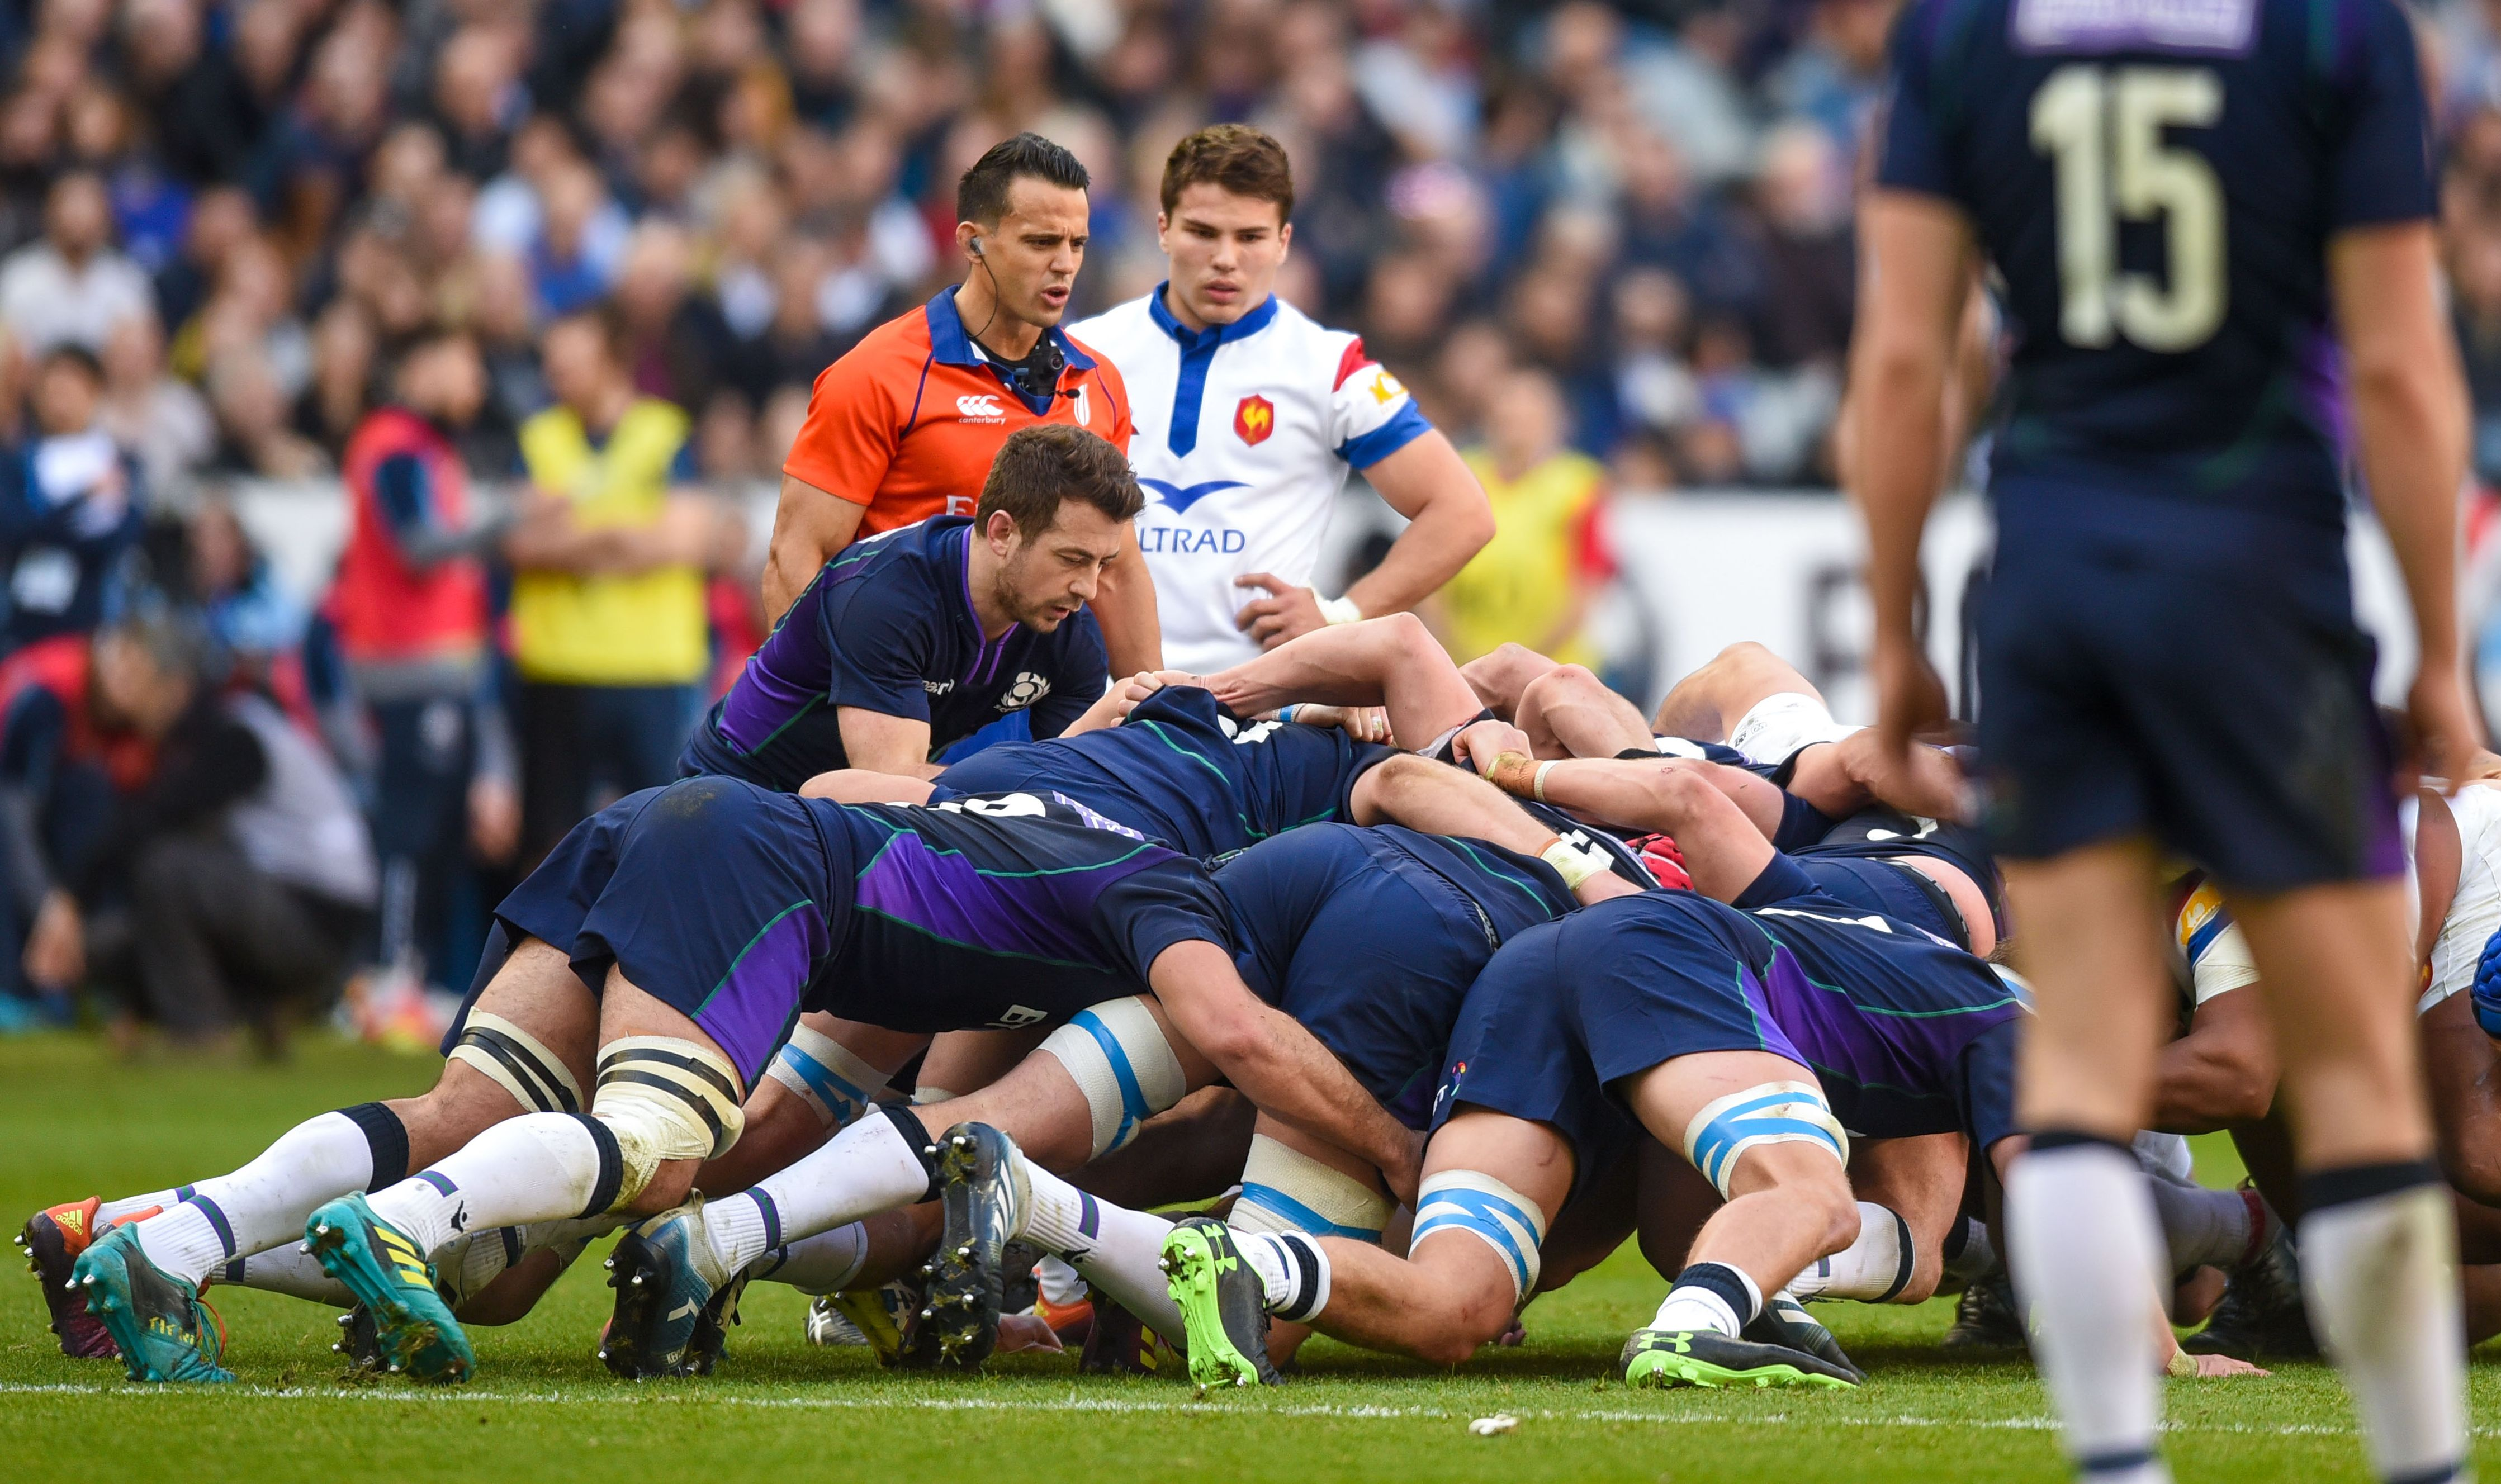 Rugby - World Rugby crée une Ligue des Nations